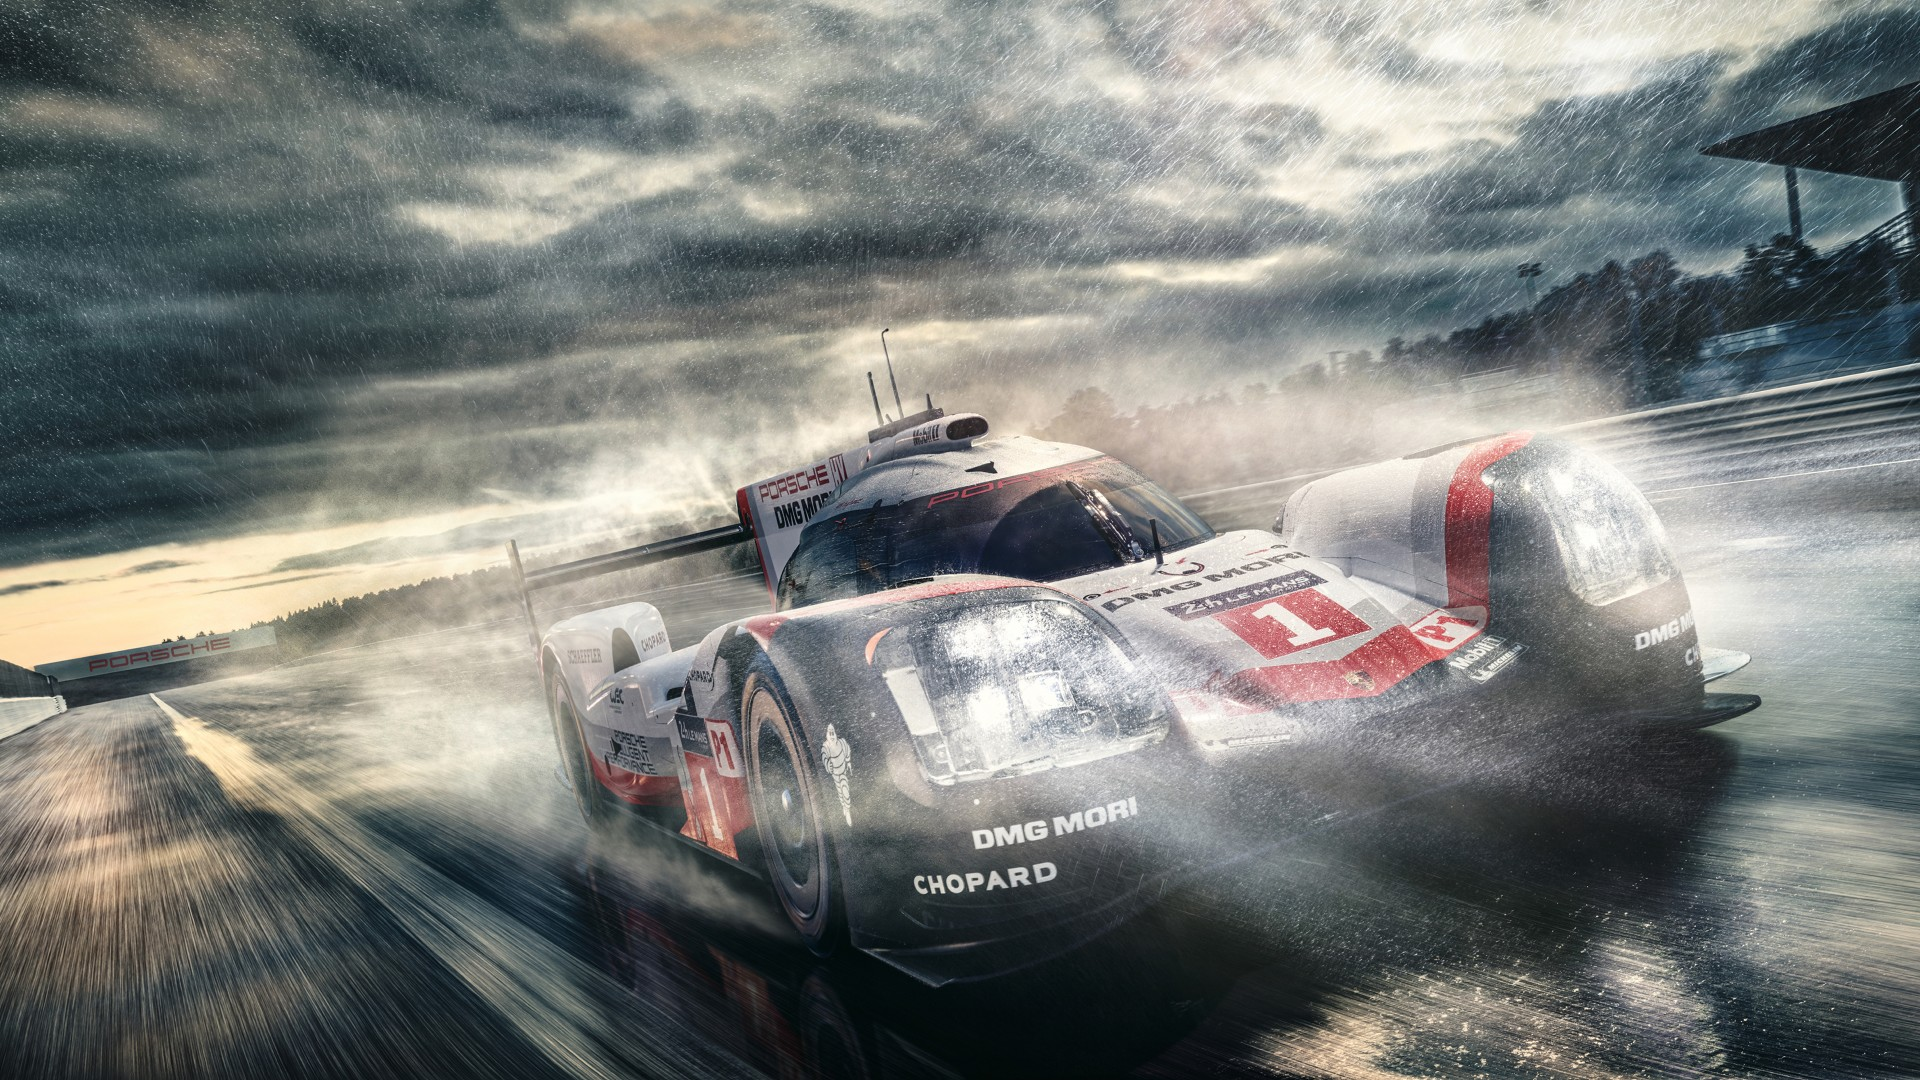 Top 10 3d Wallpapers For Android Porsche 919 Hybrid 4k Wallpapers Hd Wallpapers Id 22829